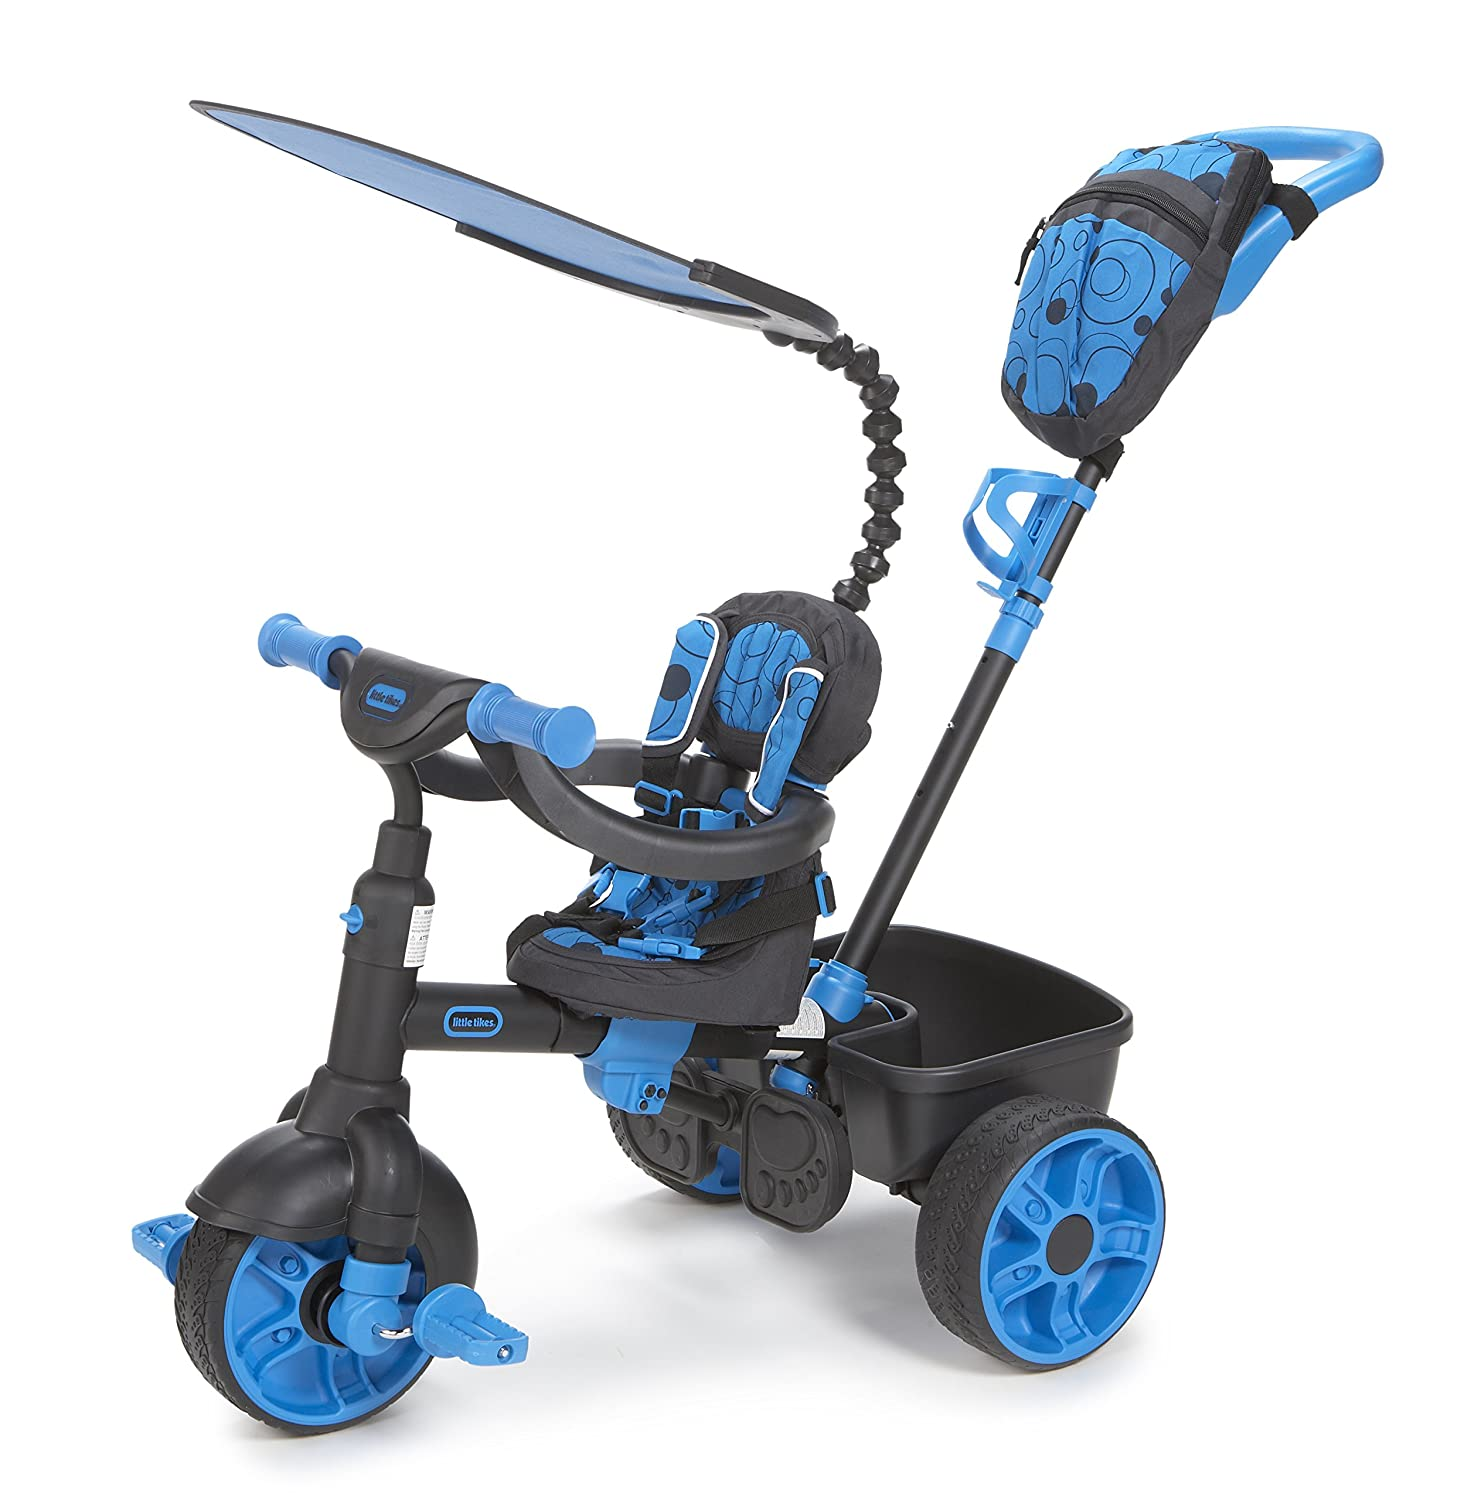 An Image of Little Tikes 4-in-1 Ride On, Neon Blue, Deluxe Edition